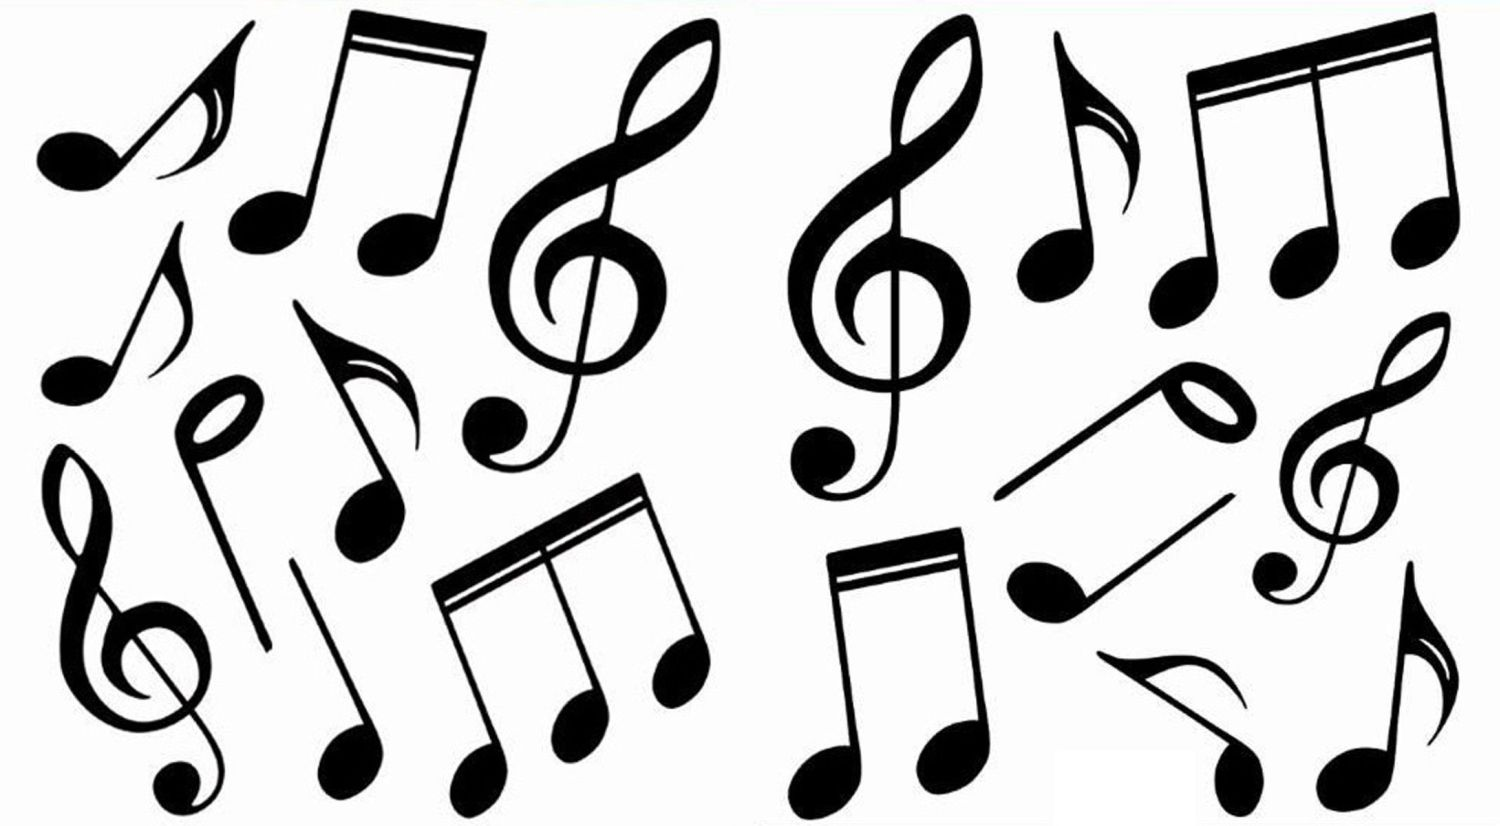 music emblems clipart - photo #20